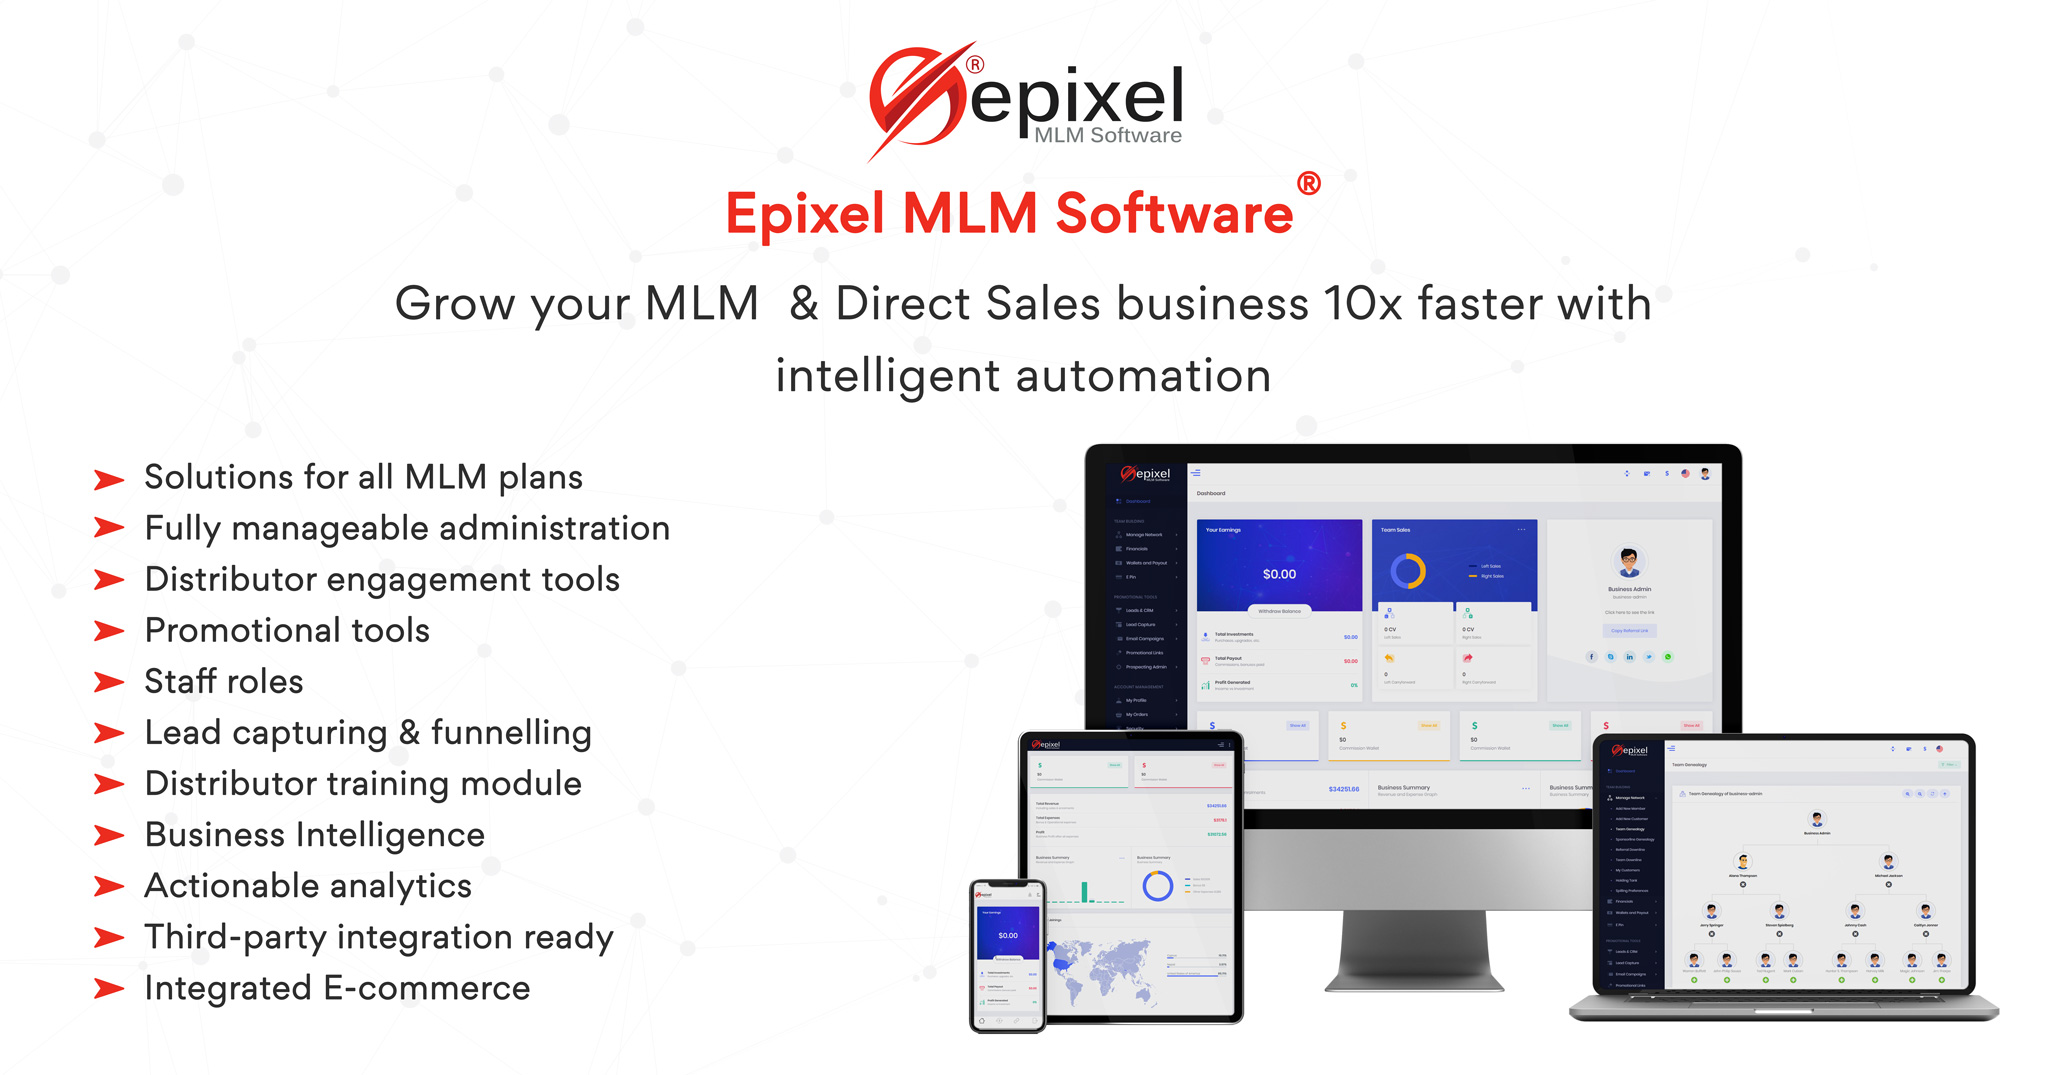 Epixel MLM Software